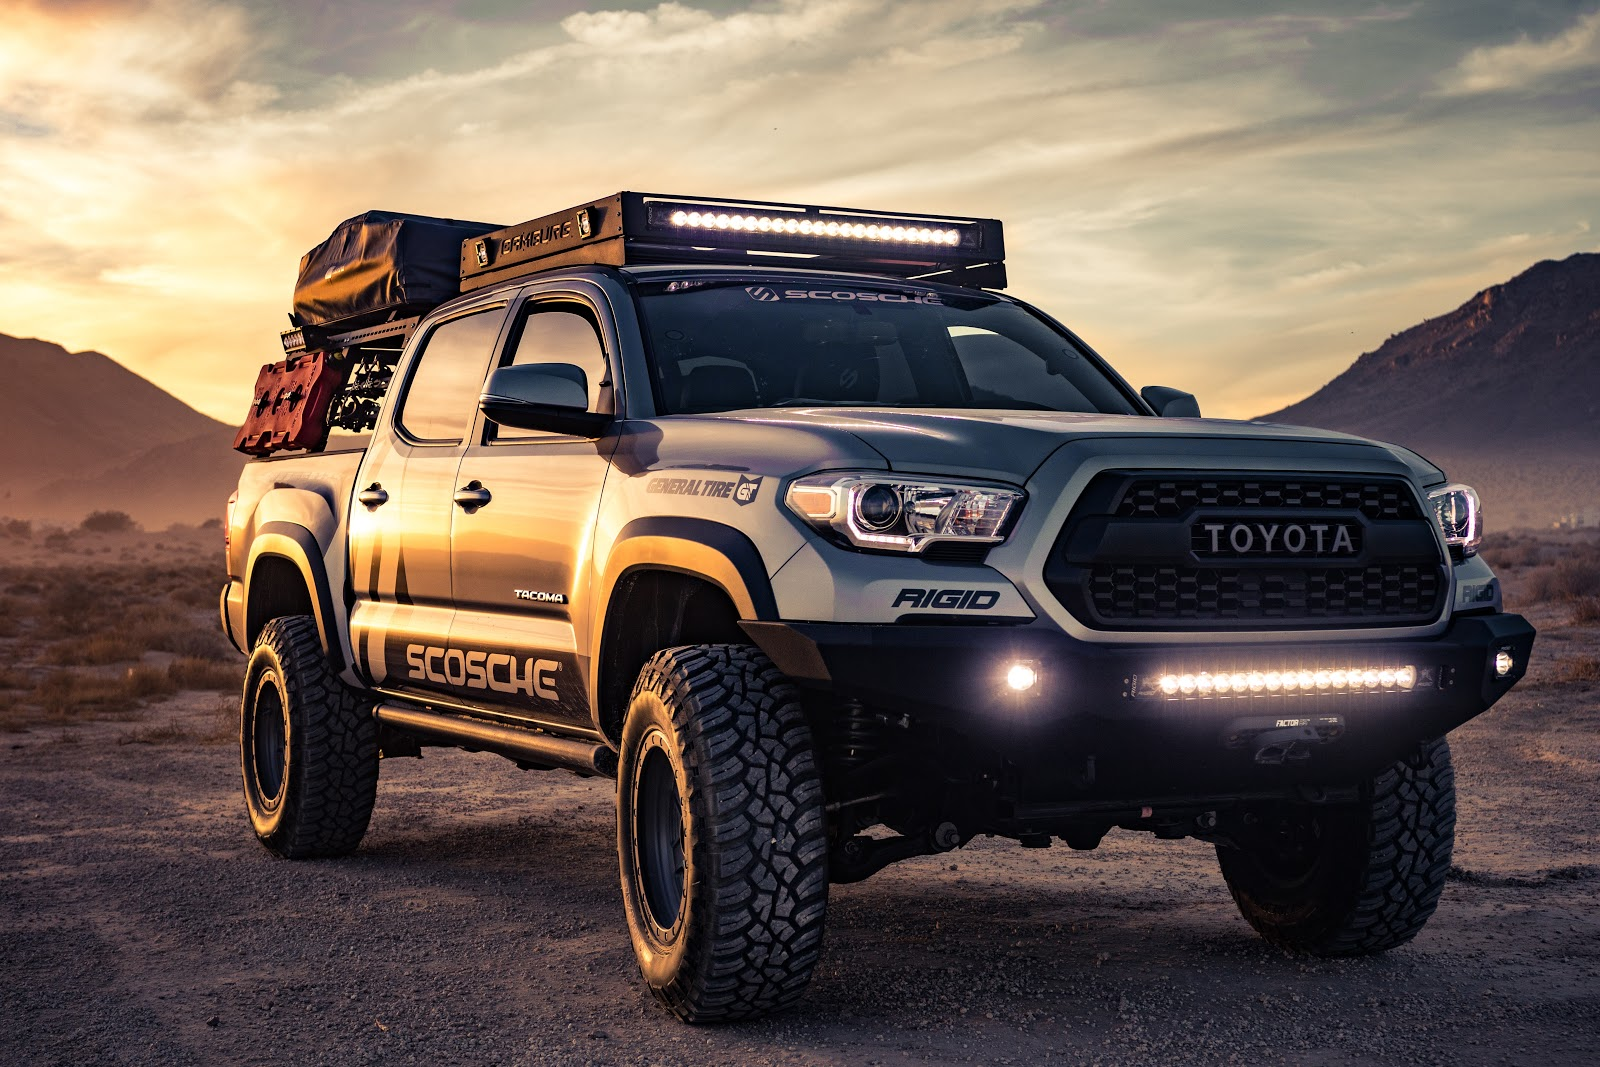 4k Wallpaper Automobile Automotive Branding Black Toyota 4-door Truck